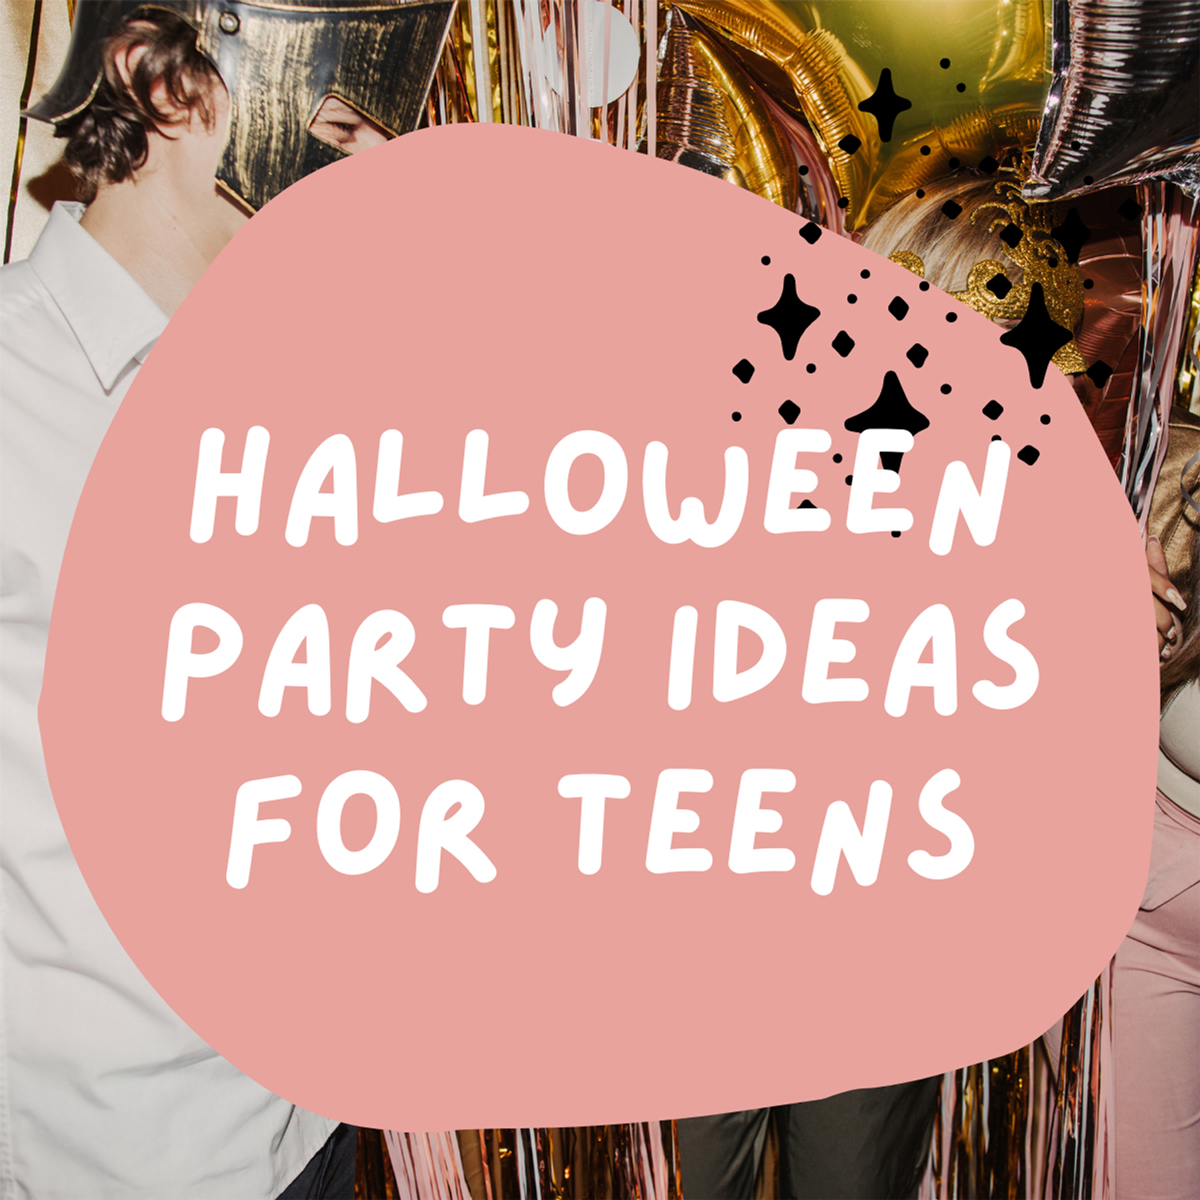 Halloween Party Ideas for Teens